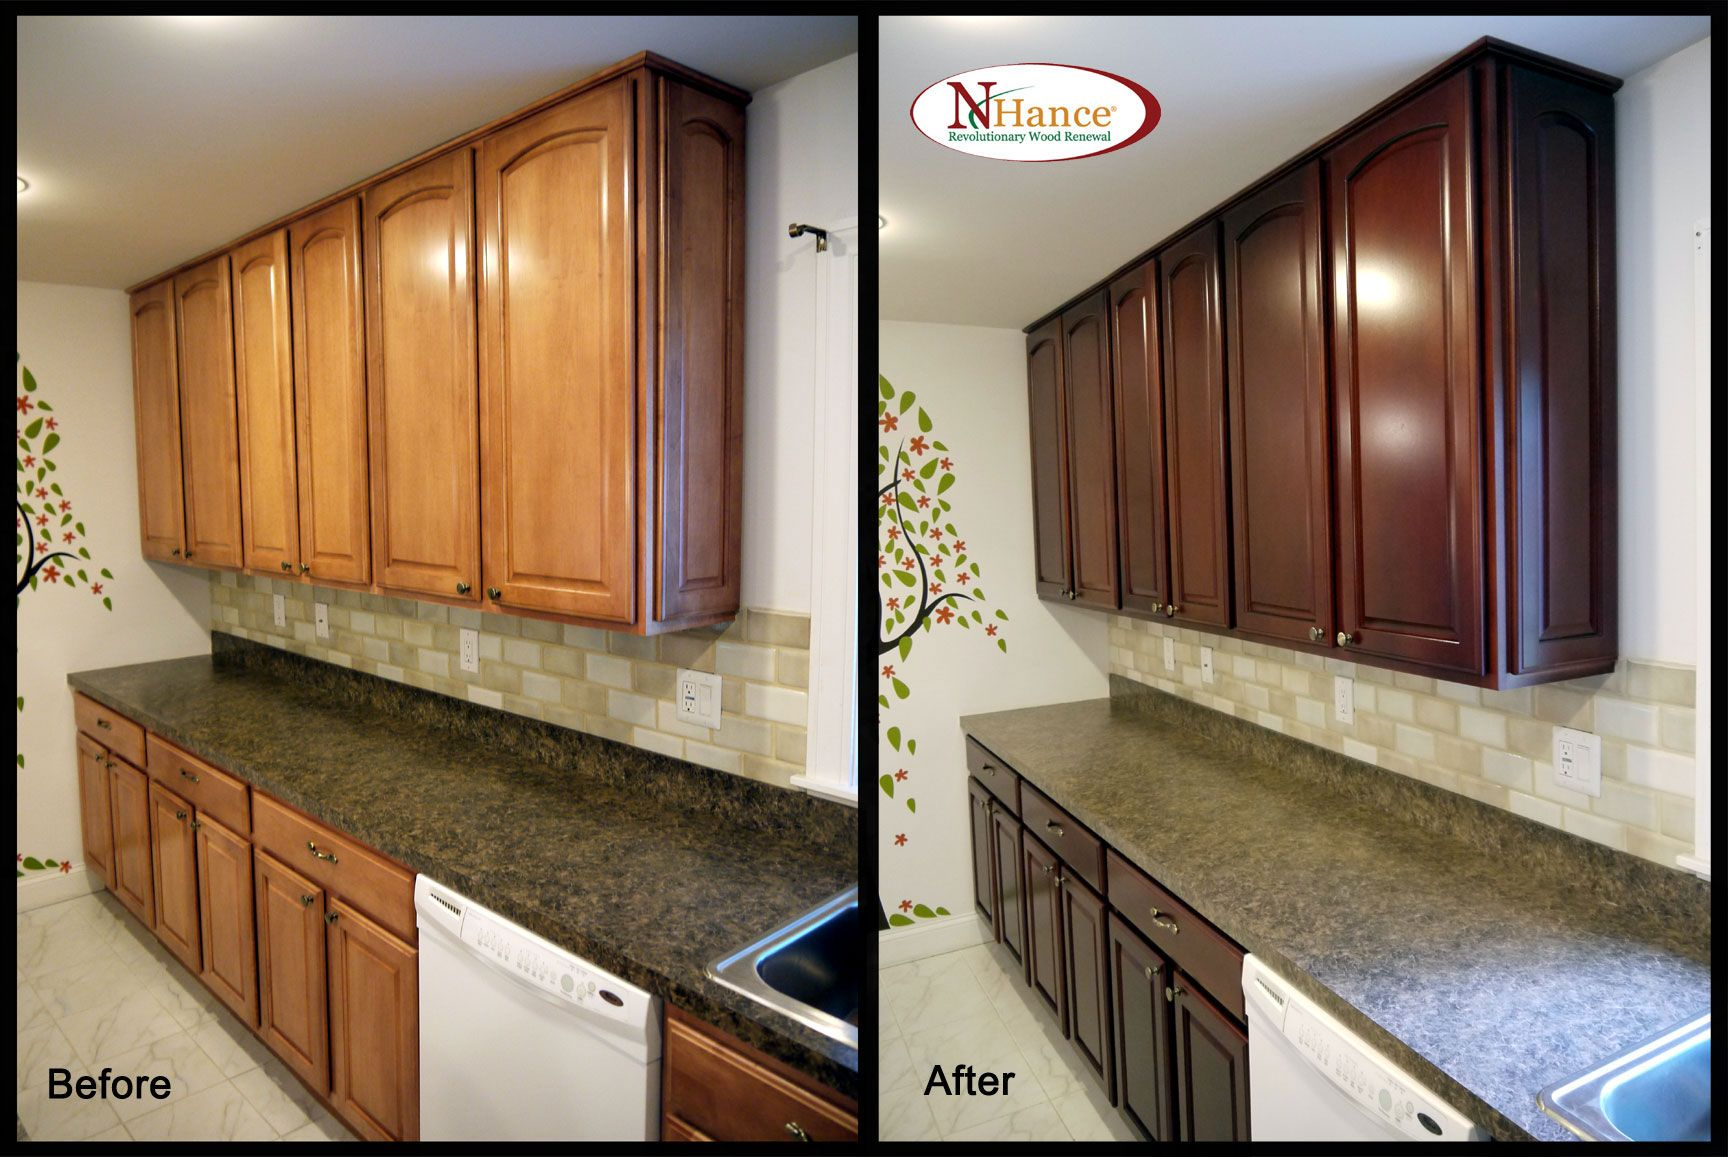 Cabinet Color Change - Before & After | Restaining kitchen ...